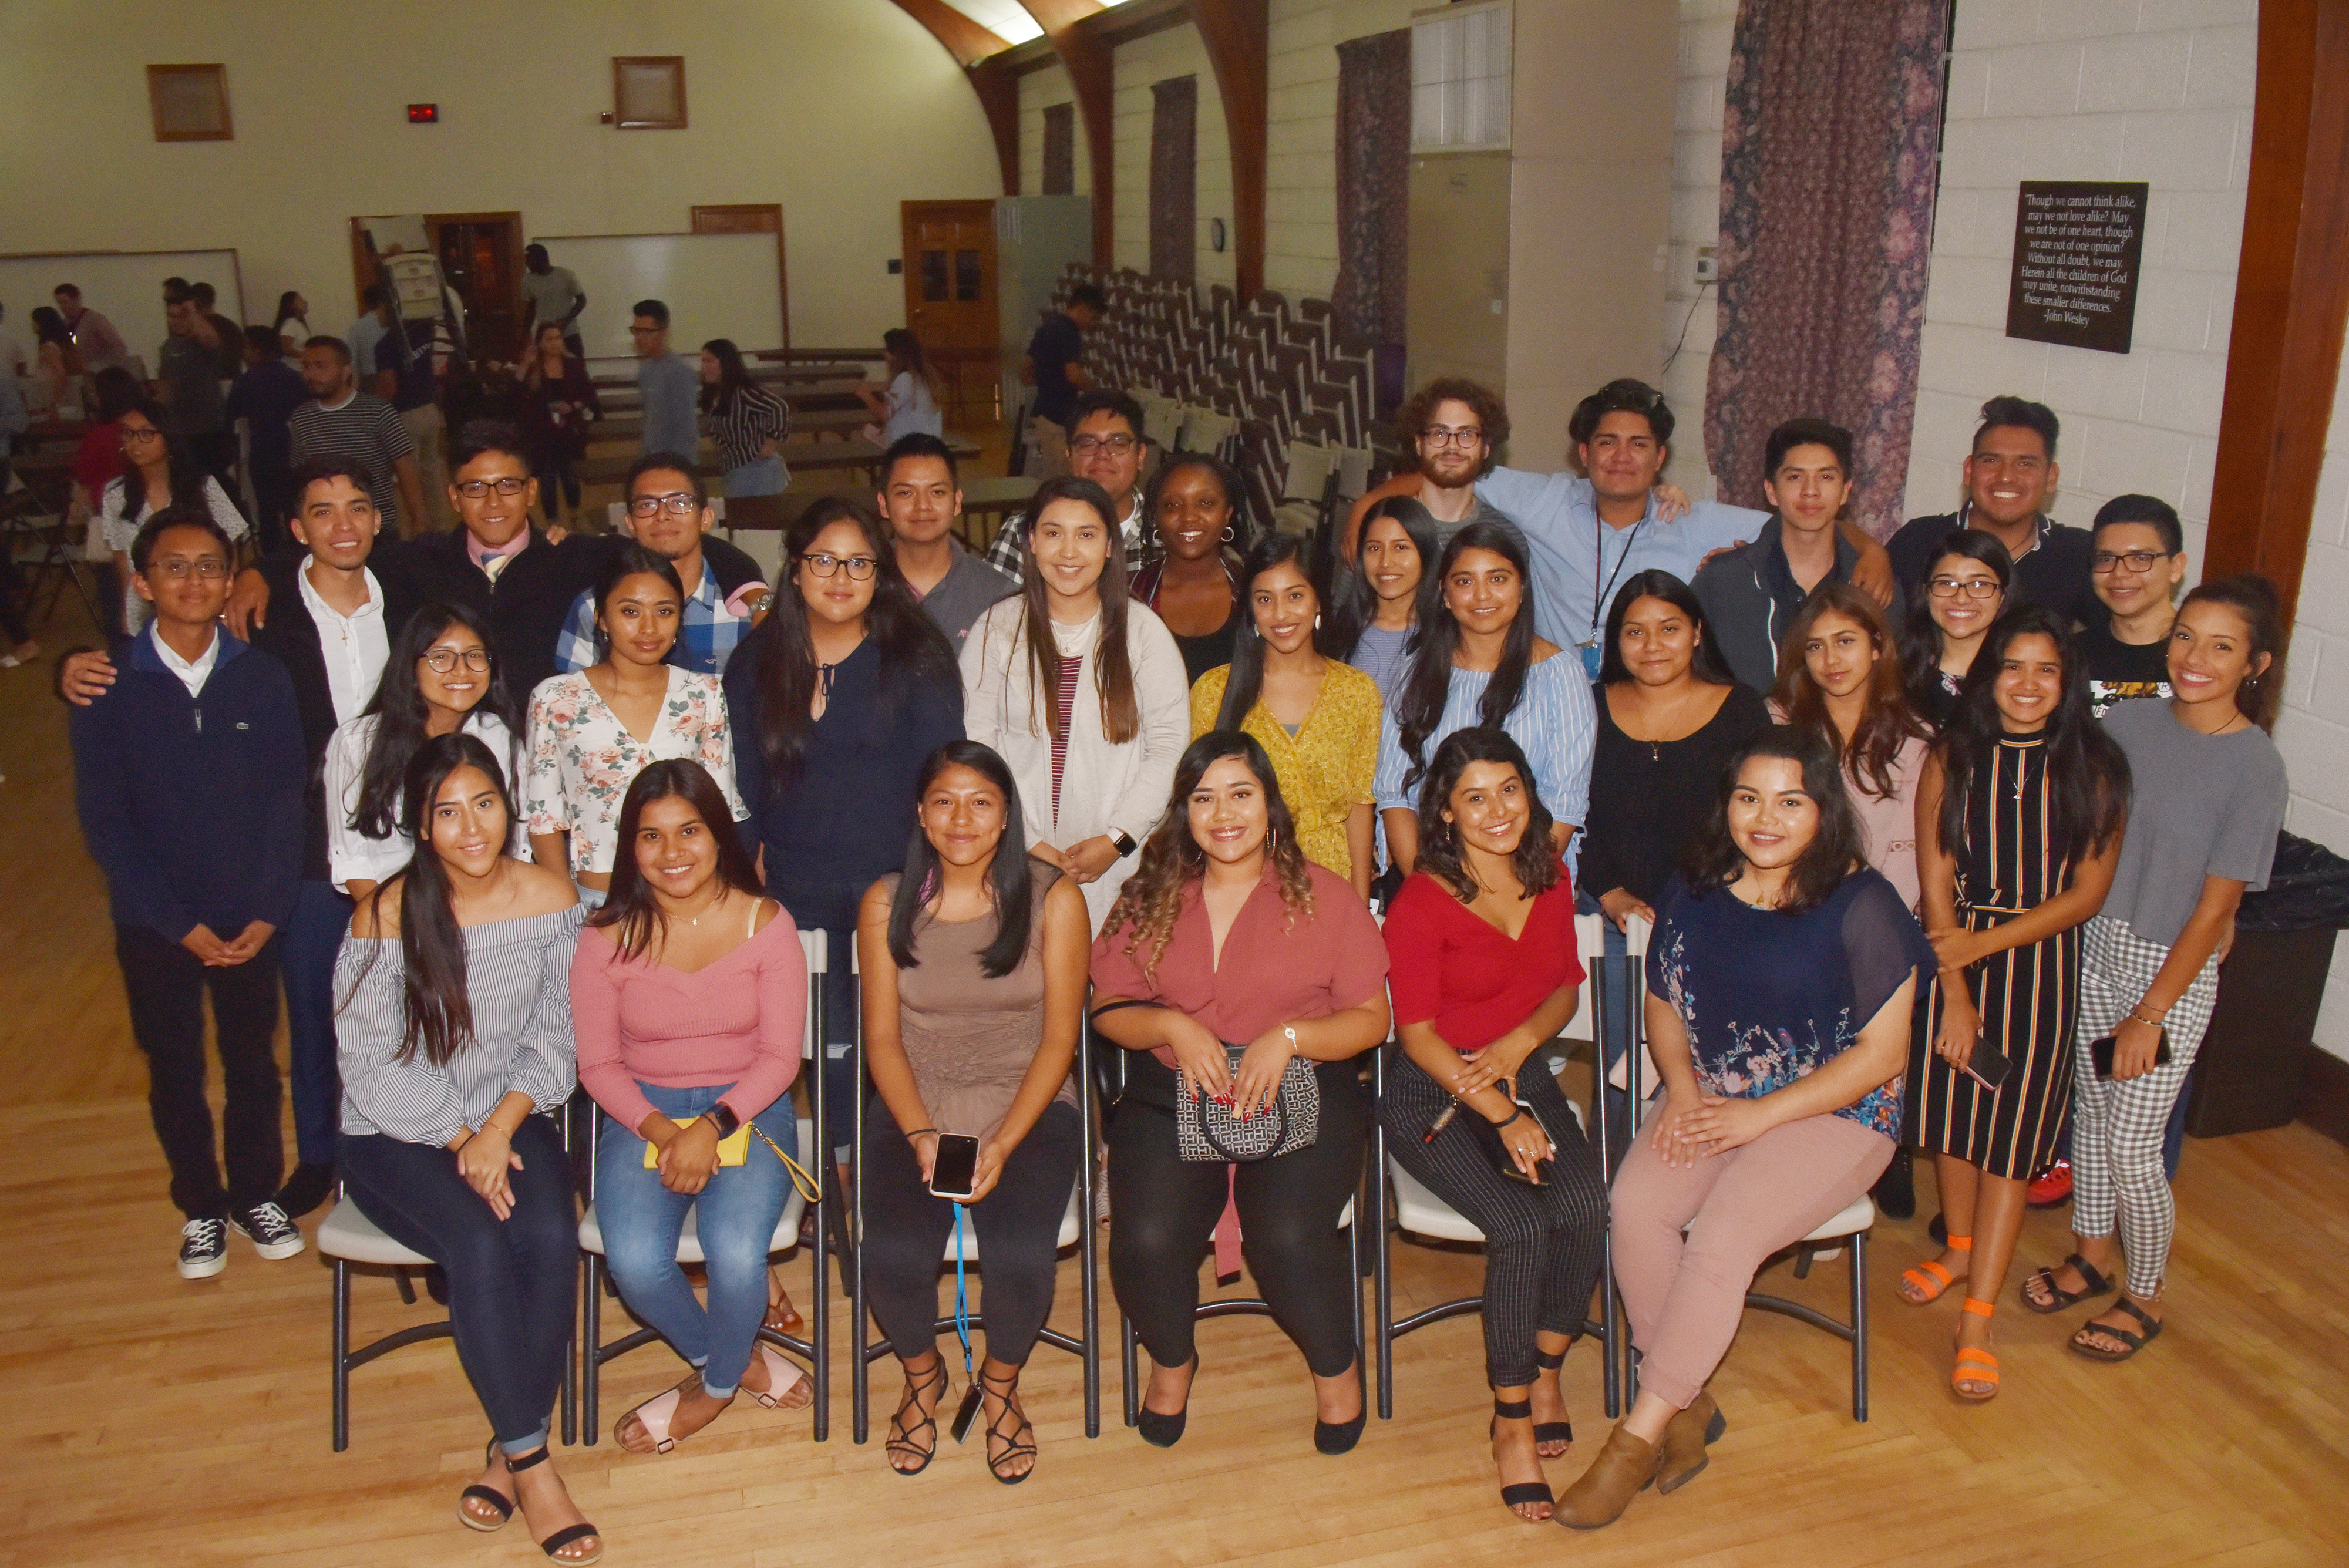 University celebrates DACA ruling with Dreamers